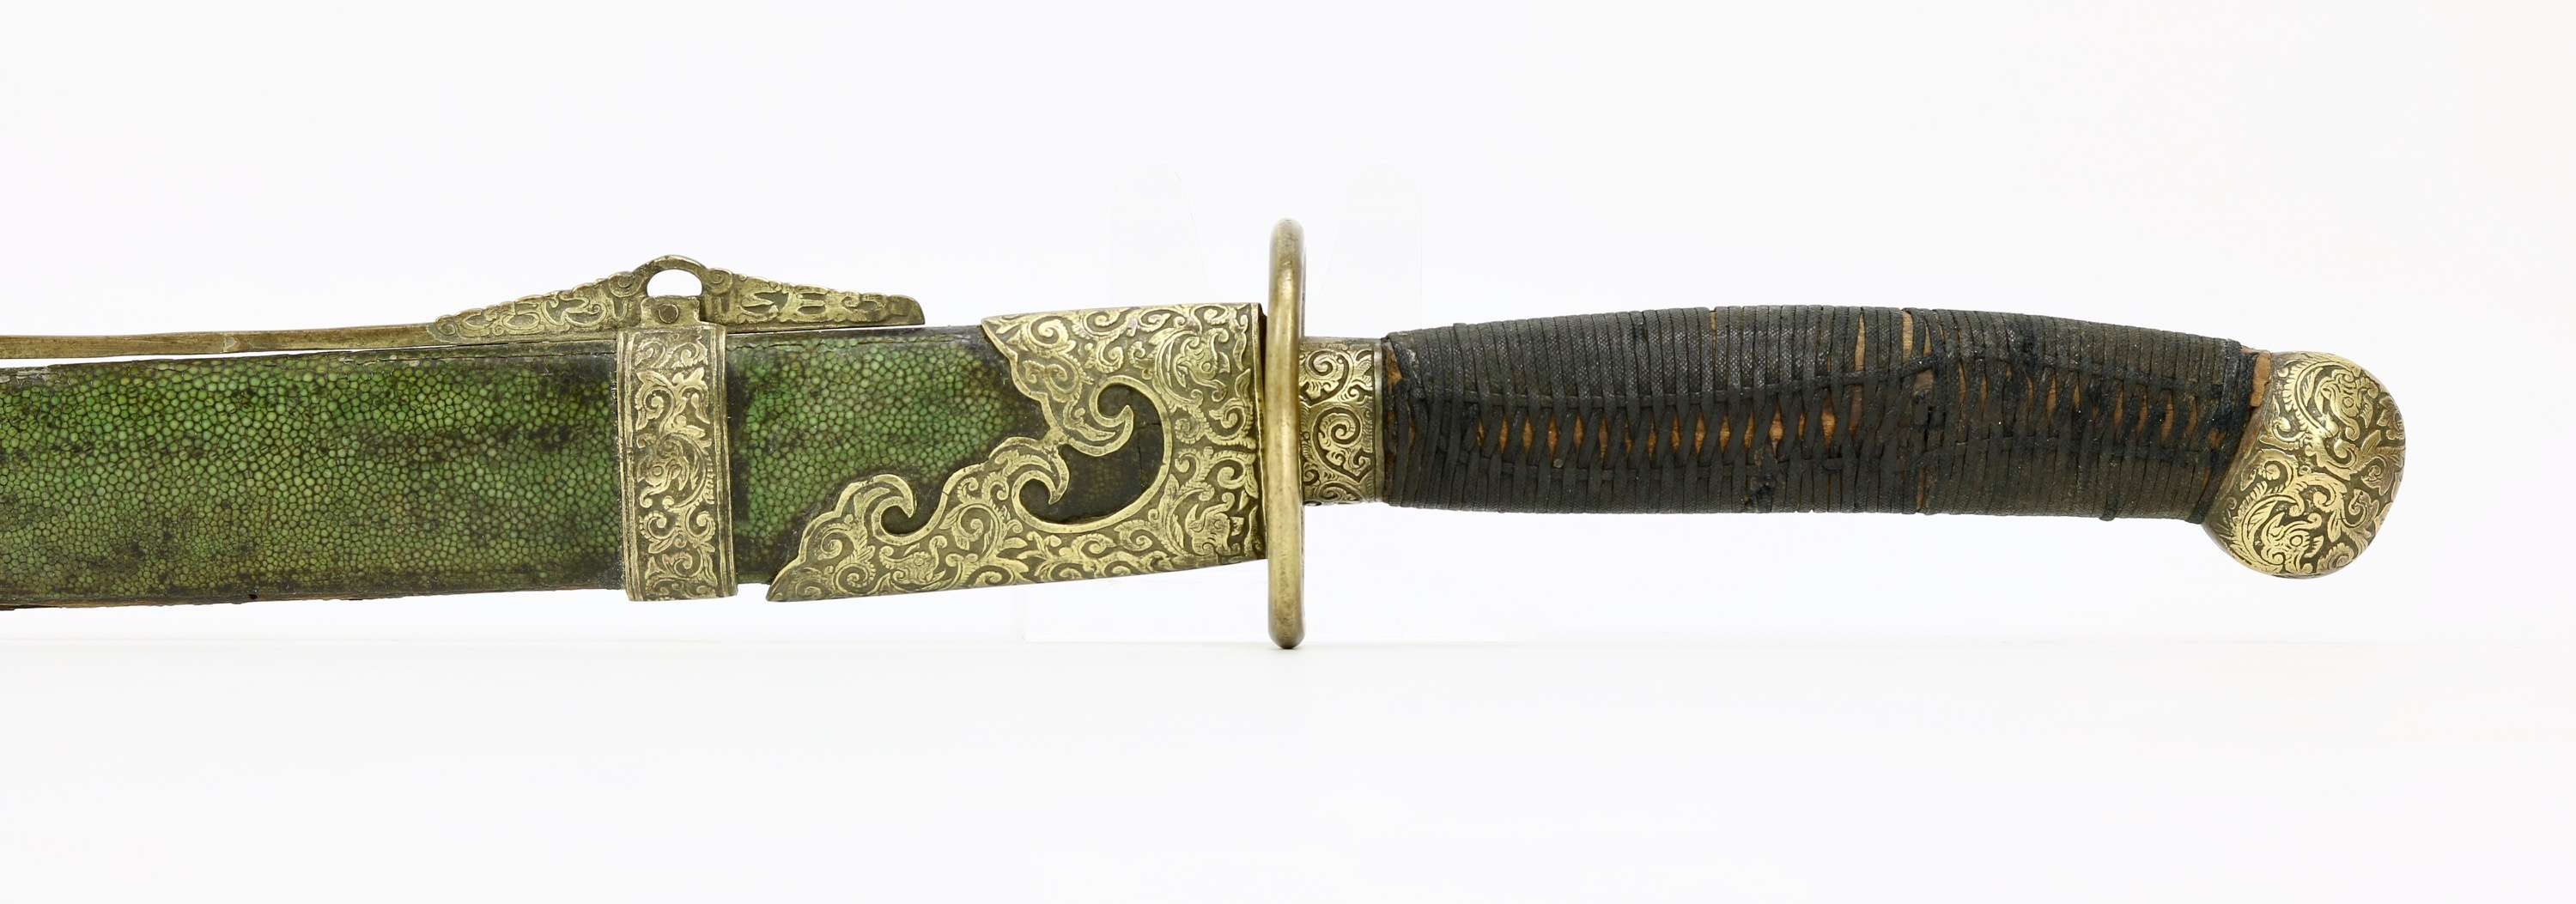 Large southern Chinese saber